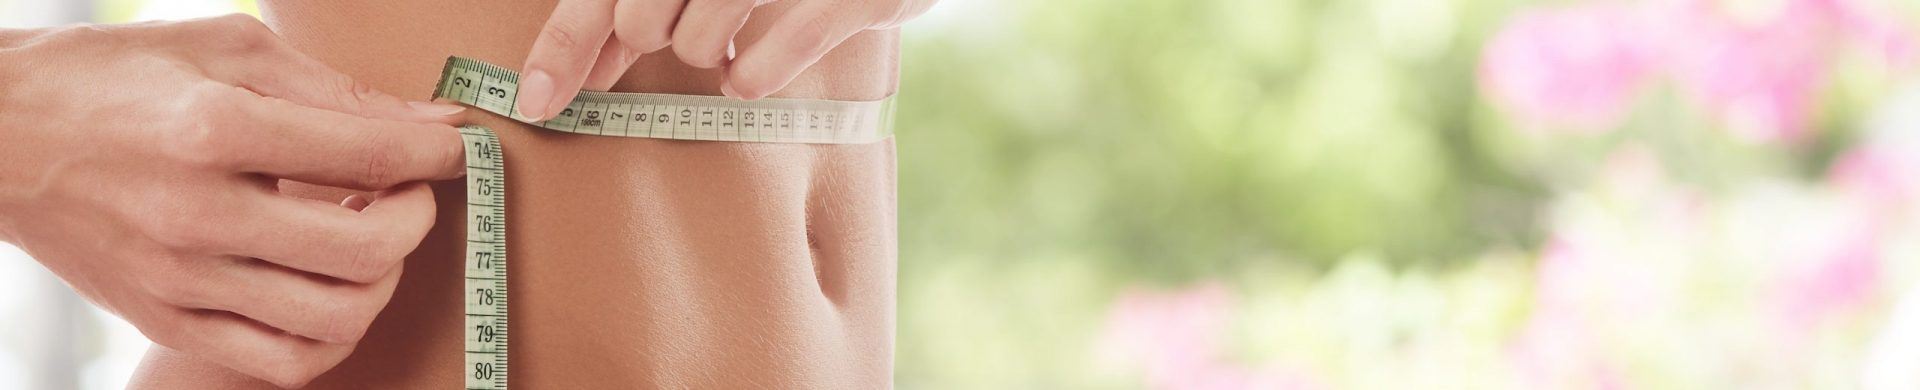 Calorie Investing: Lose Weight While  Eating More